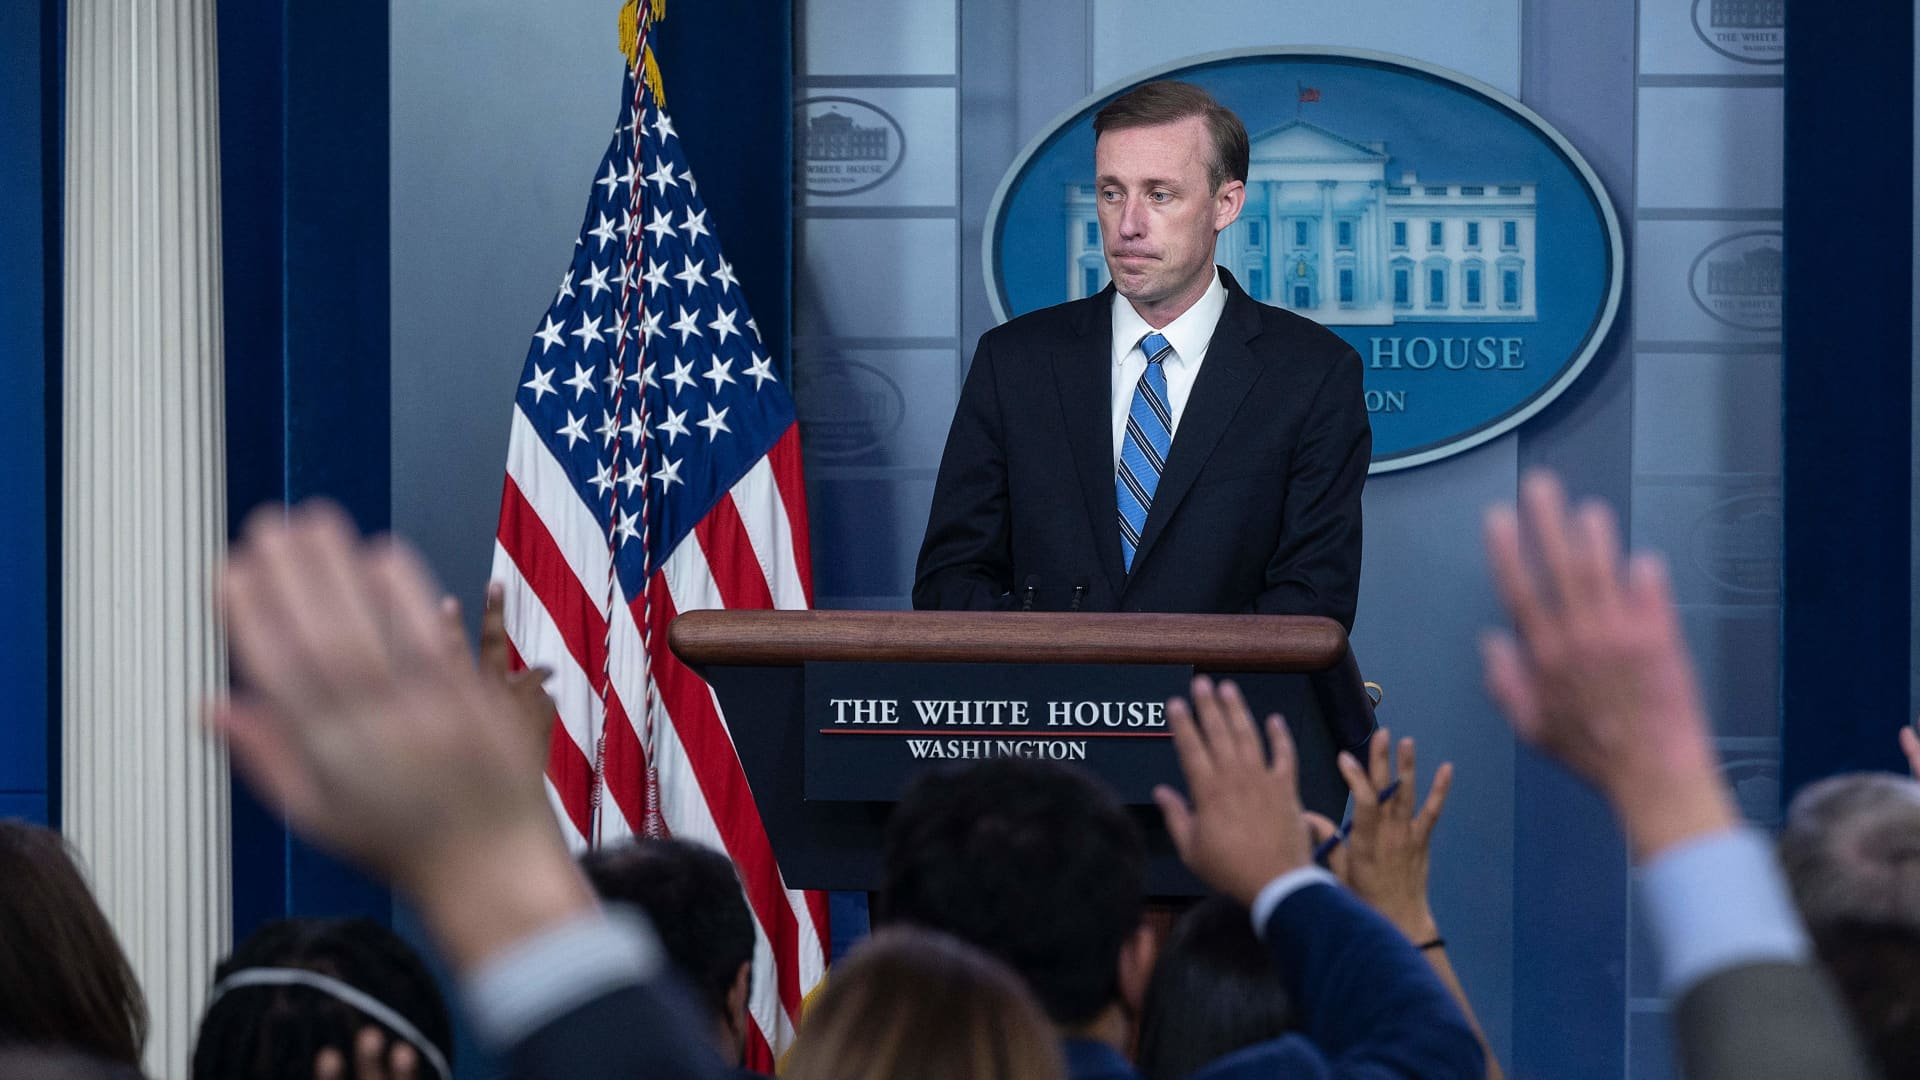 National Security Adviser Jake Sullivan speaks during the daily press briefing at the White House in Washington, DC, on August 23, 2021.